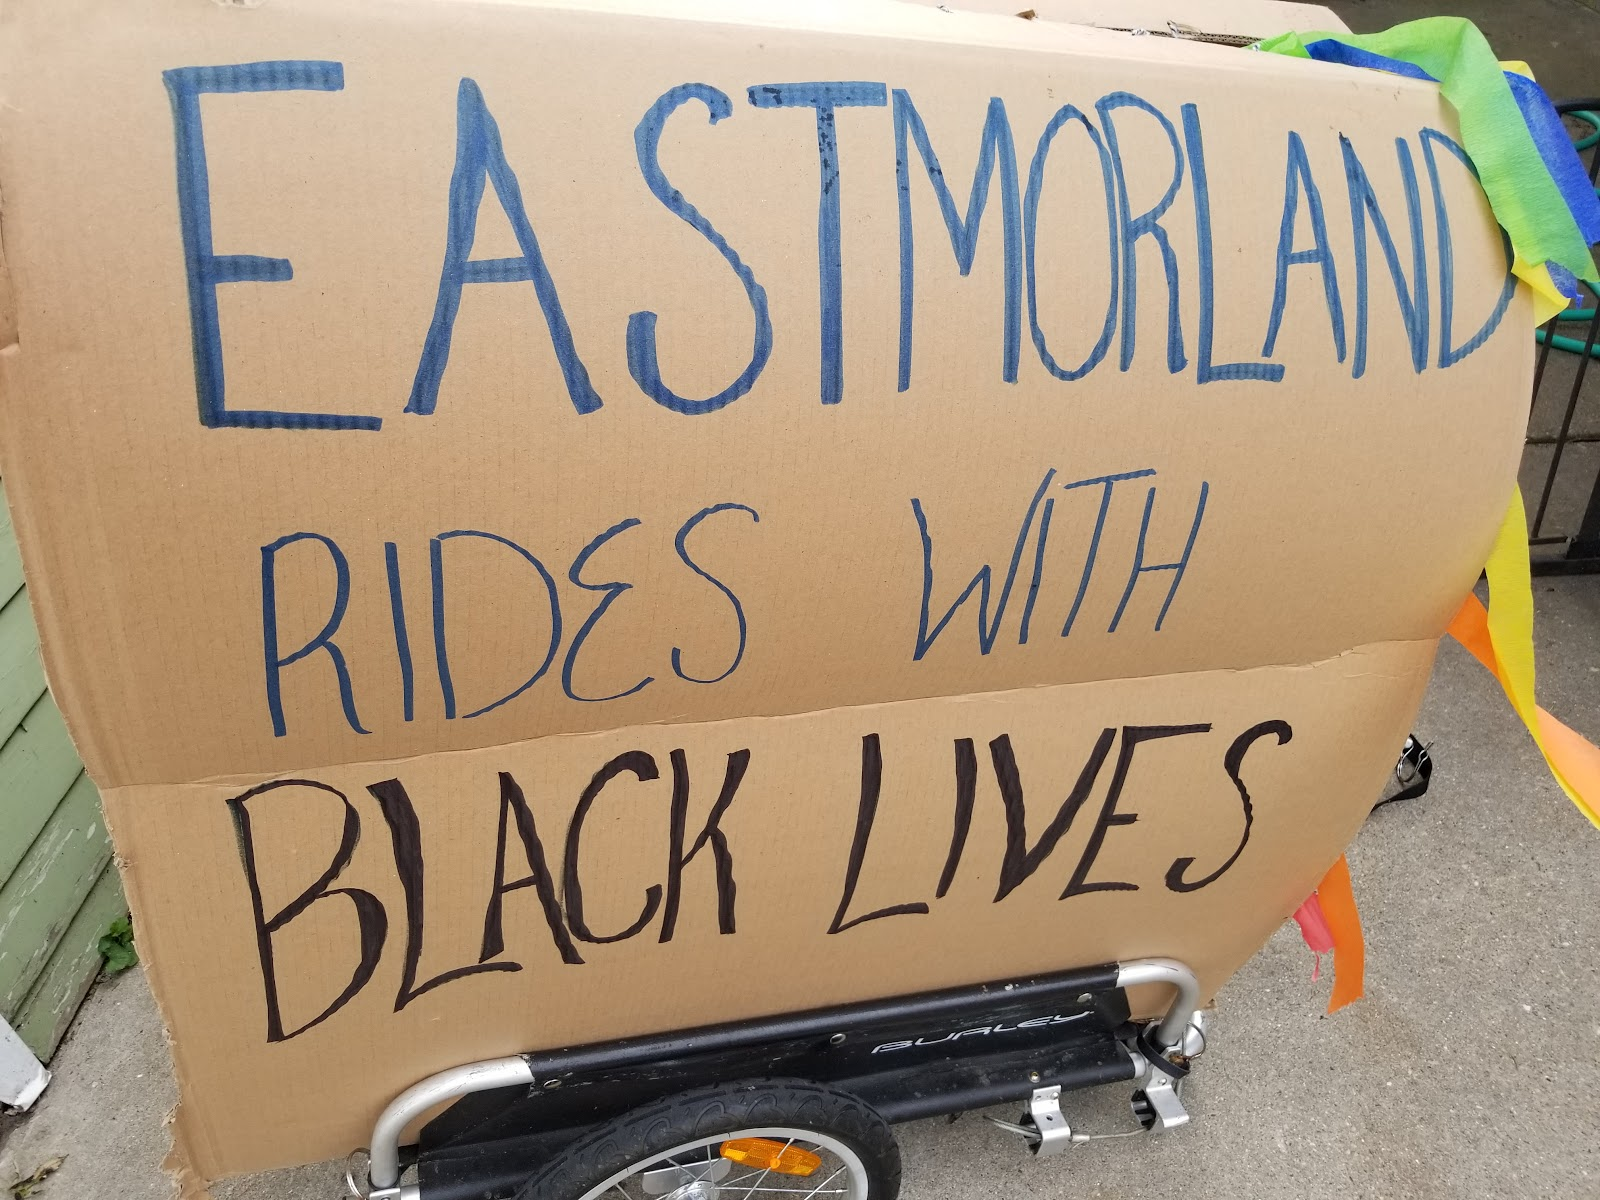 eastmorland rides with black lives sign